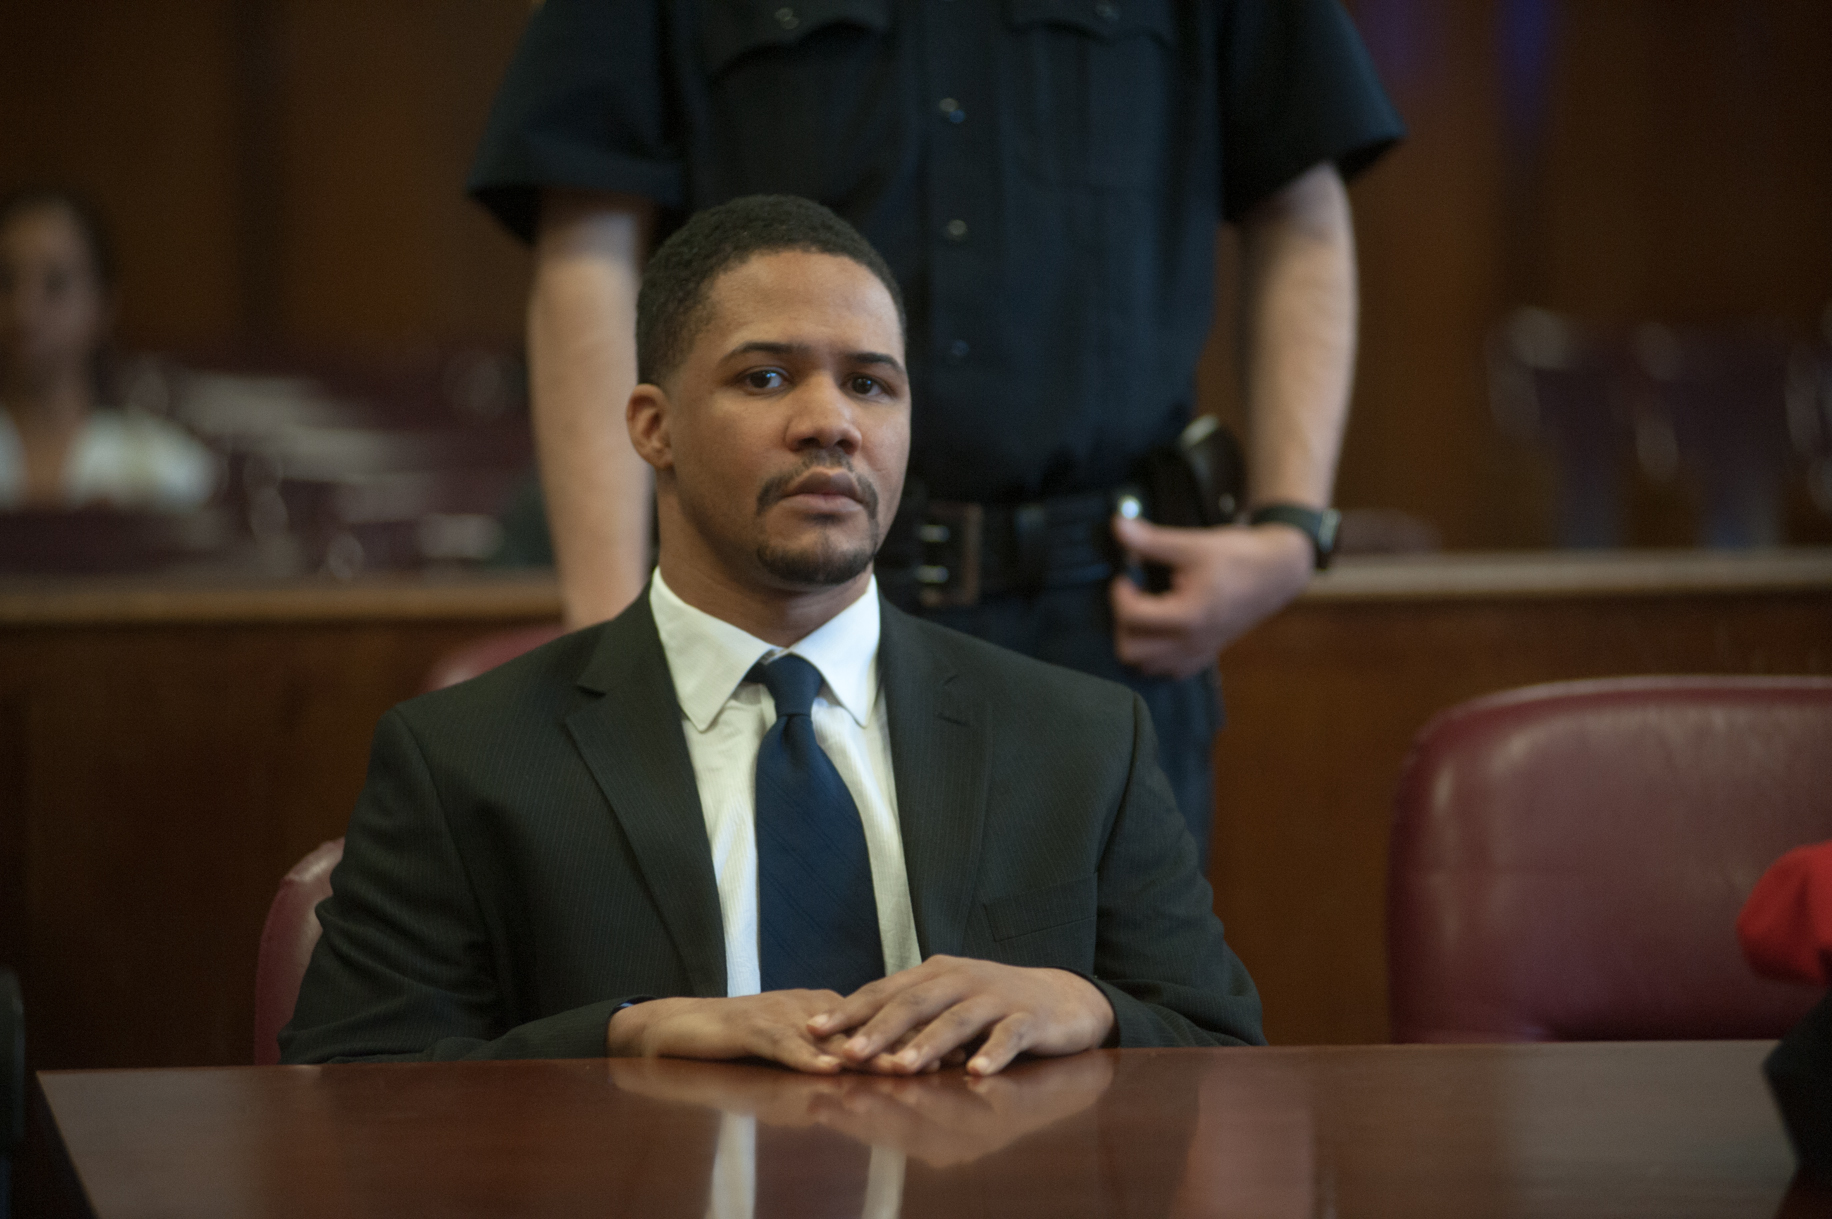 Lamar Davenport Convicted Of Manslaughter Of EDena Hines